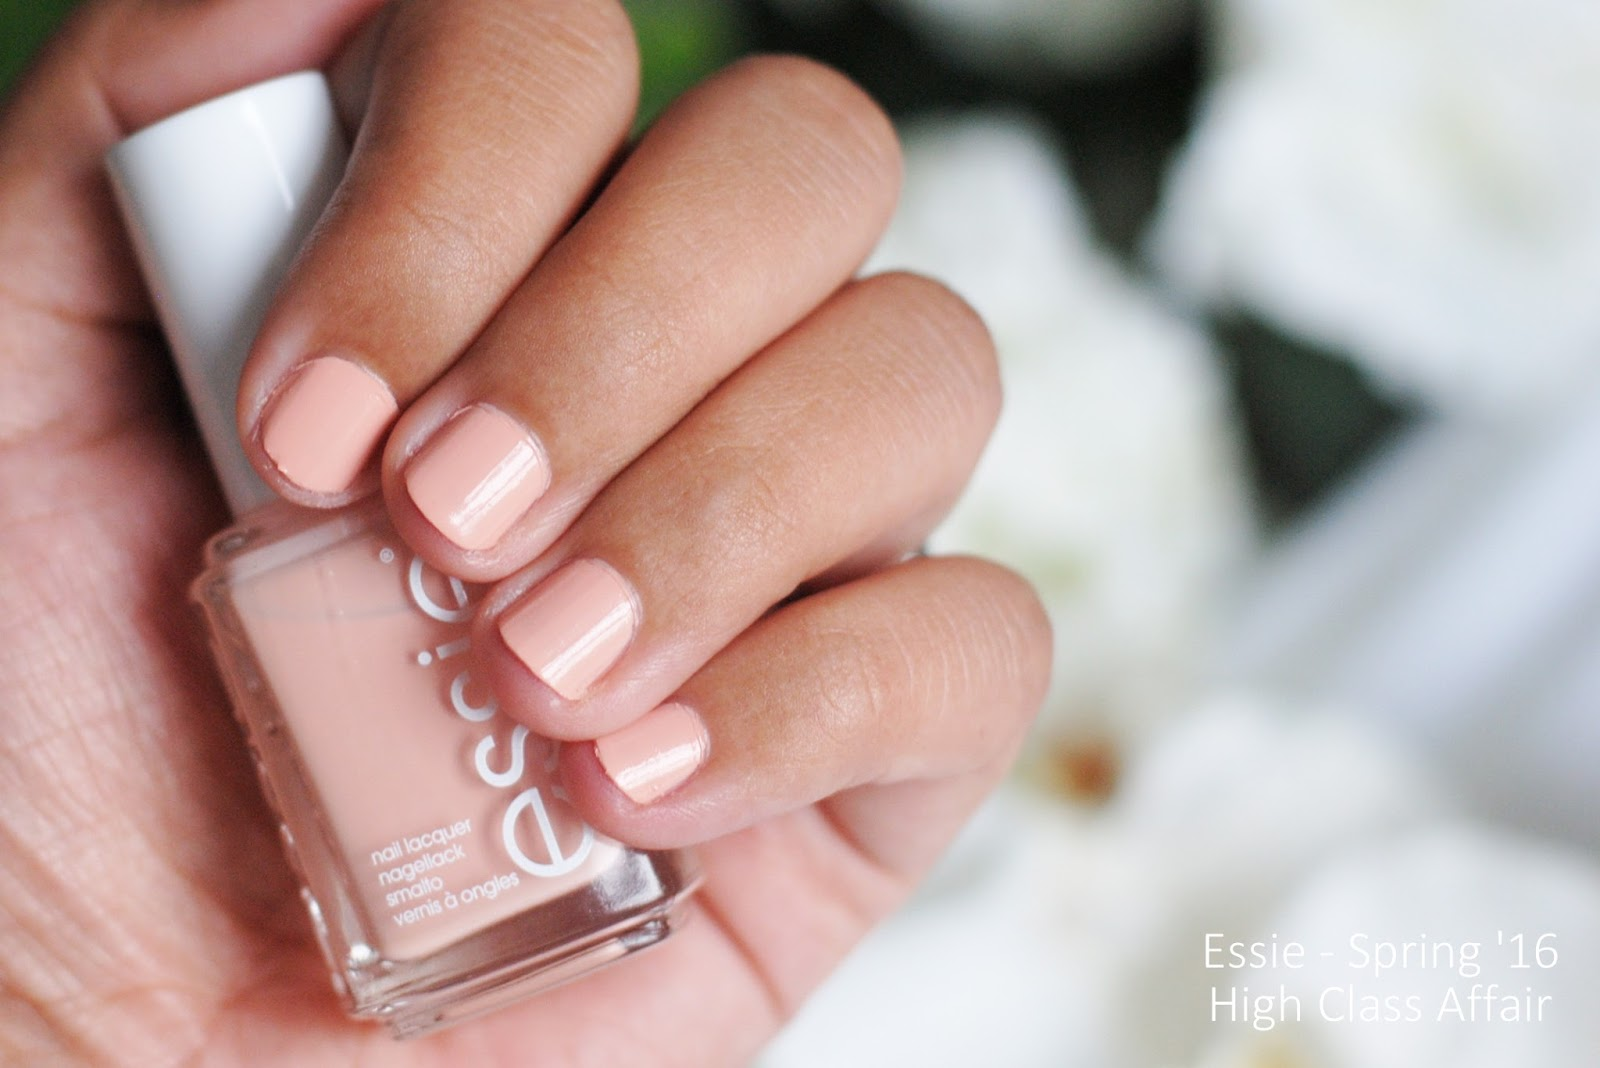 essie high class affair swatches